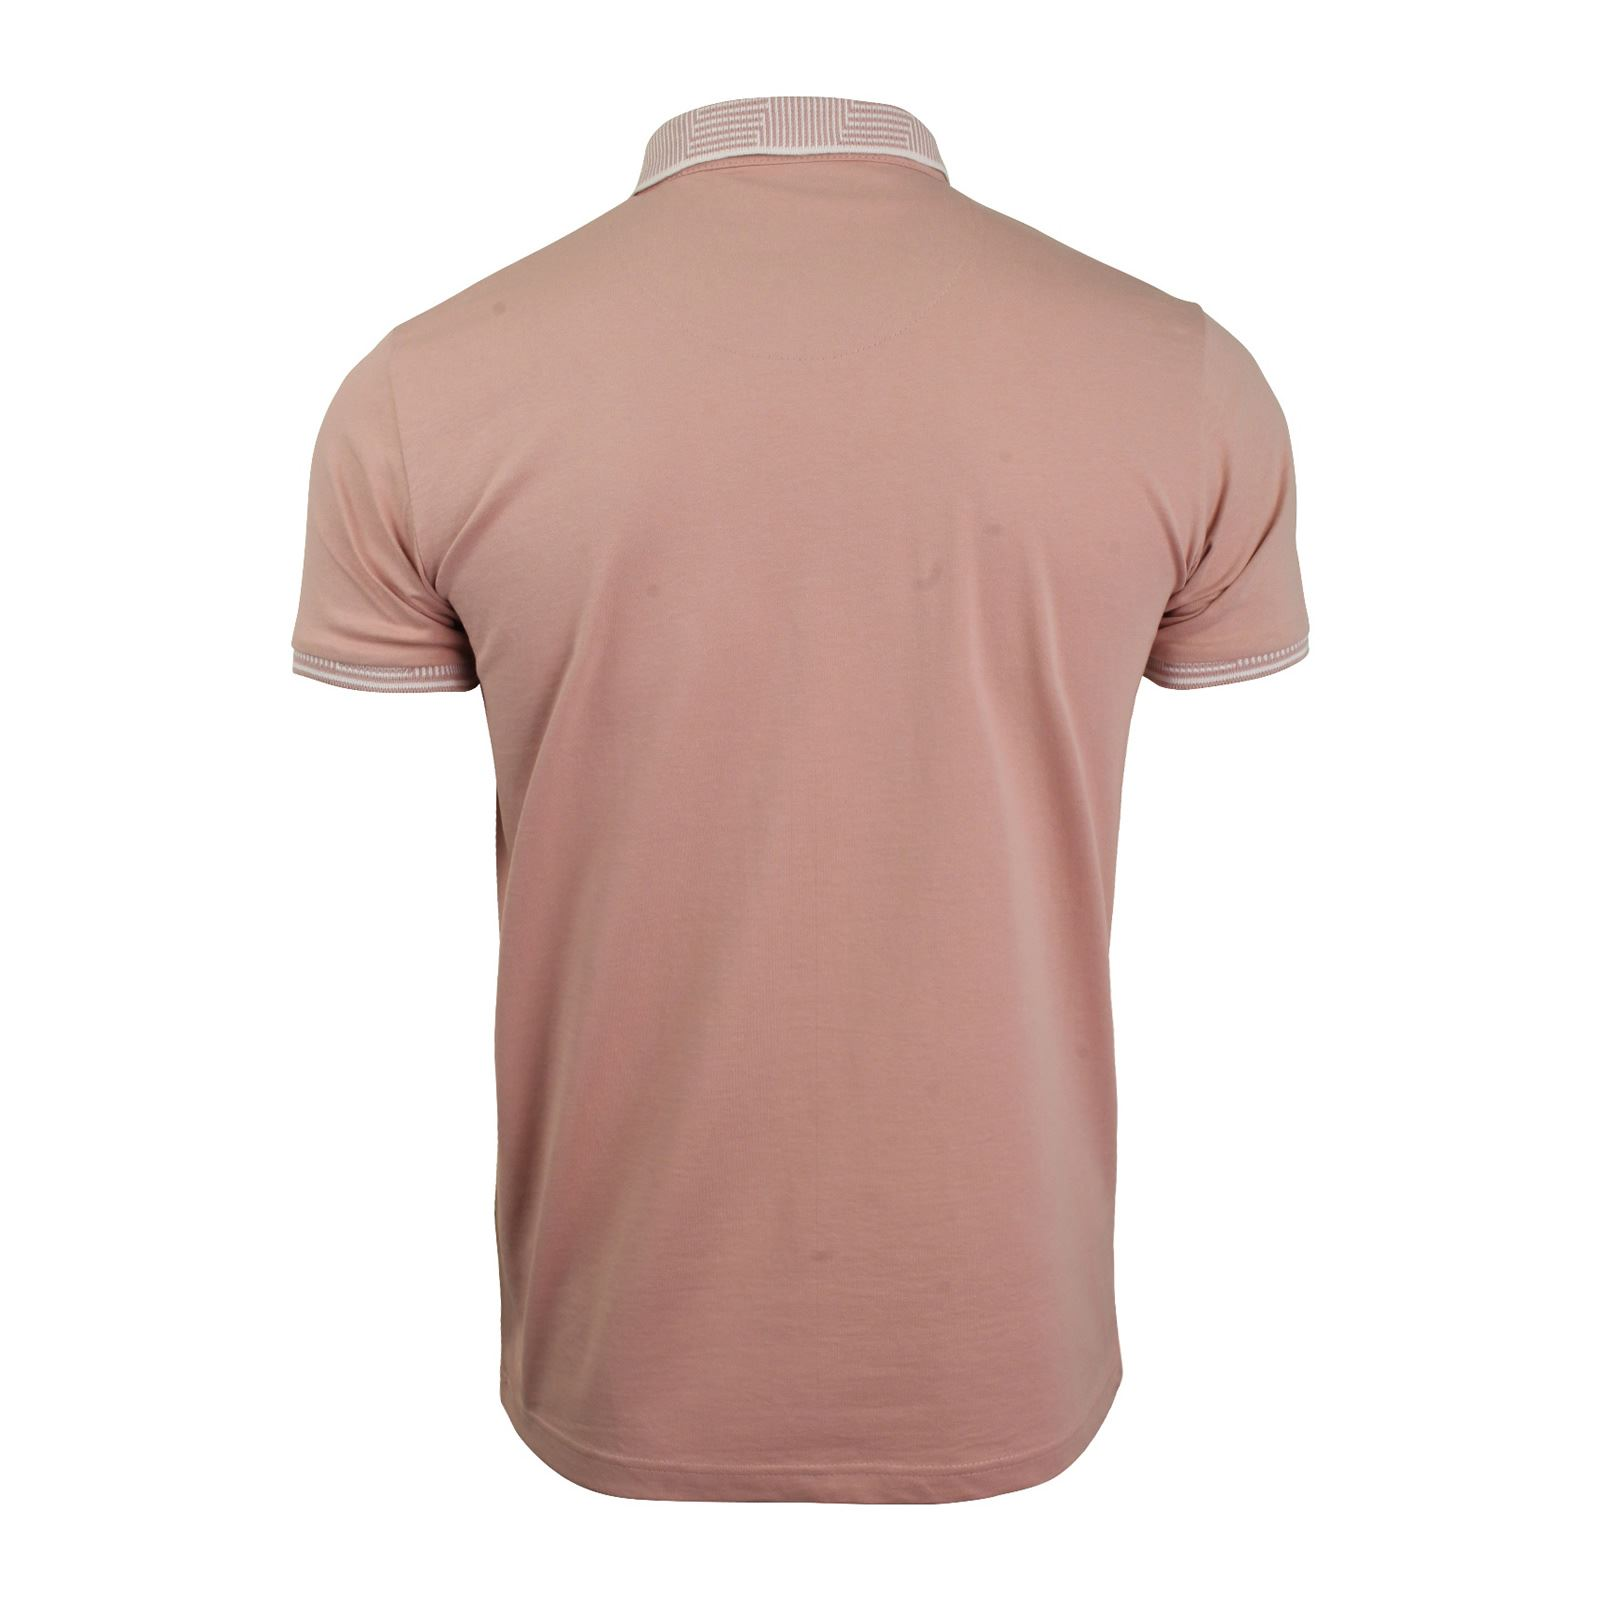 Brave-Soul-Glover-Mens-Polo-T-Shirt-Cotton-Collared-Short-Sleeve-Casual-Top thumbnail 40